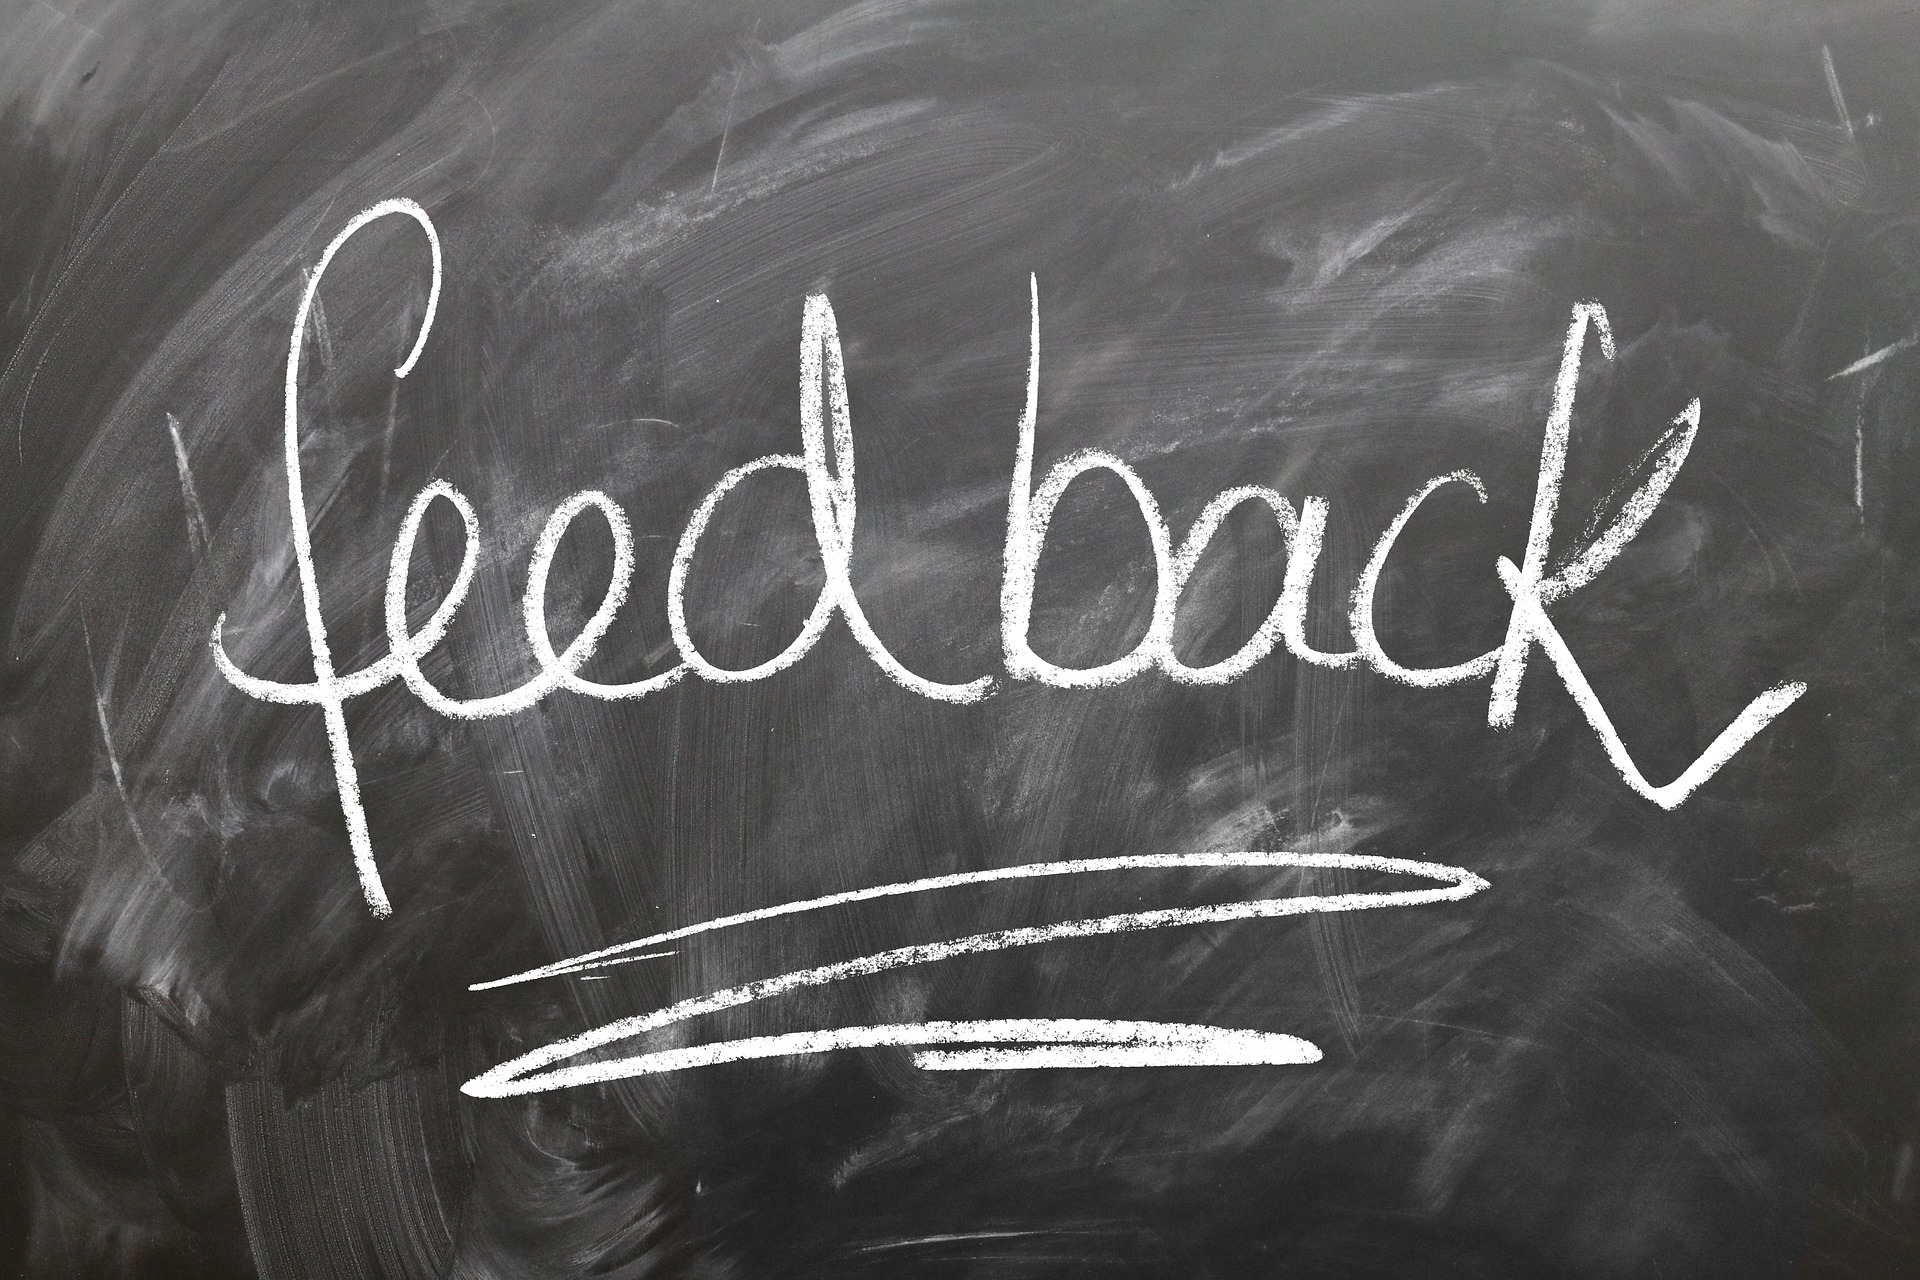 the word feedback written on a chalkboard